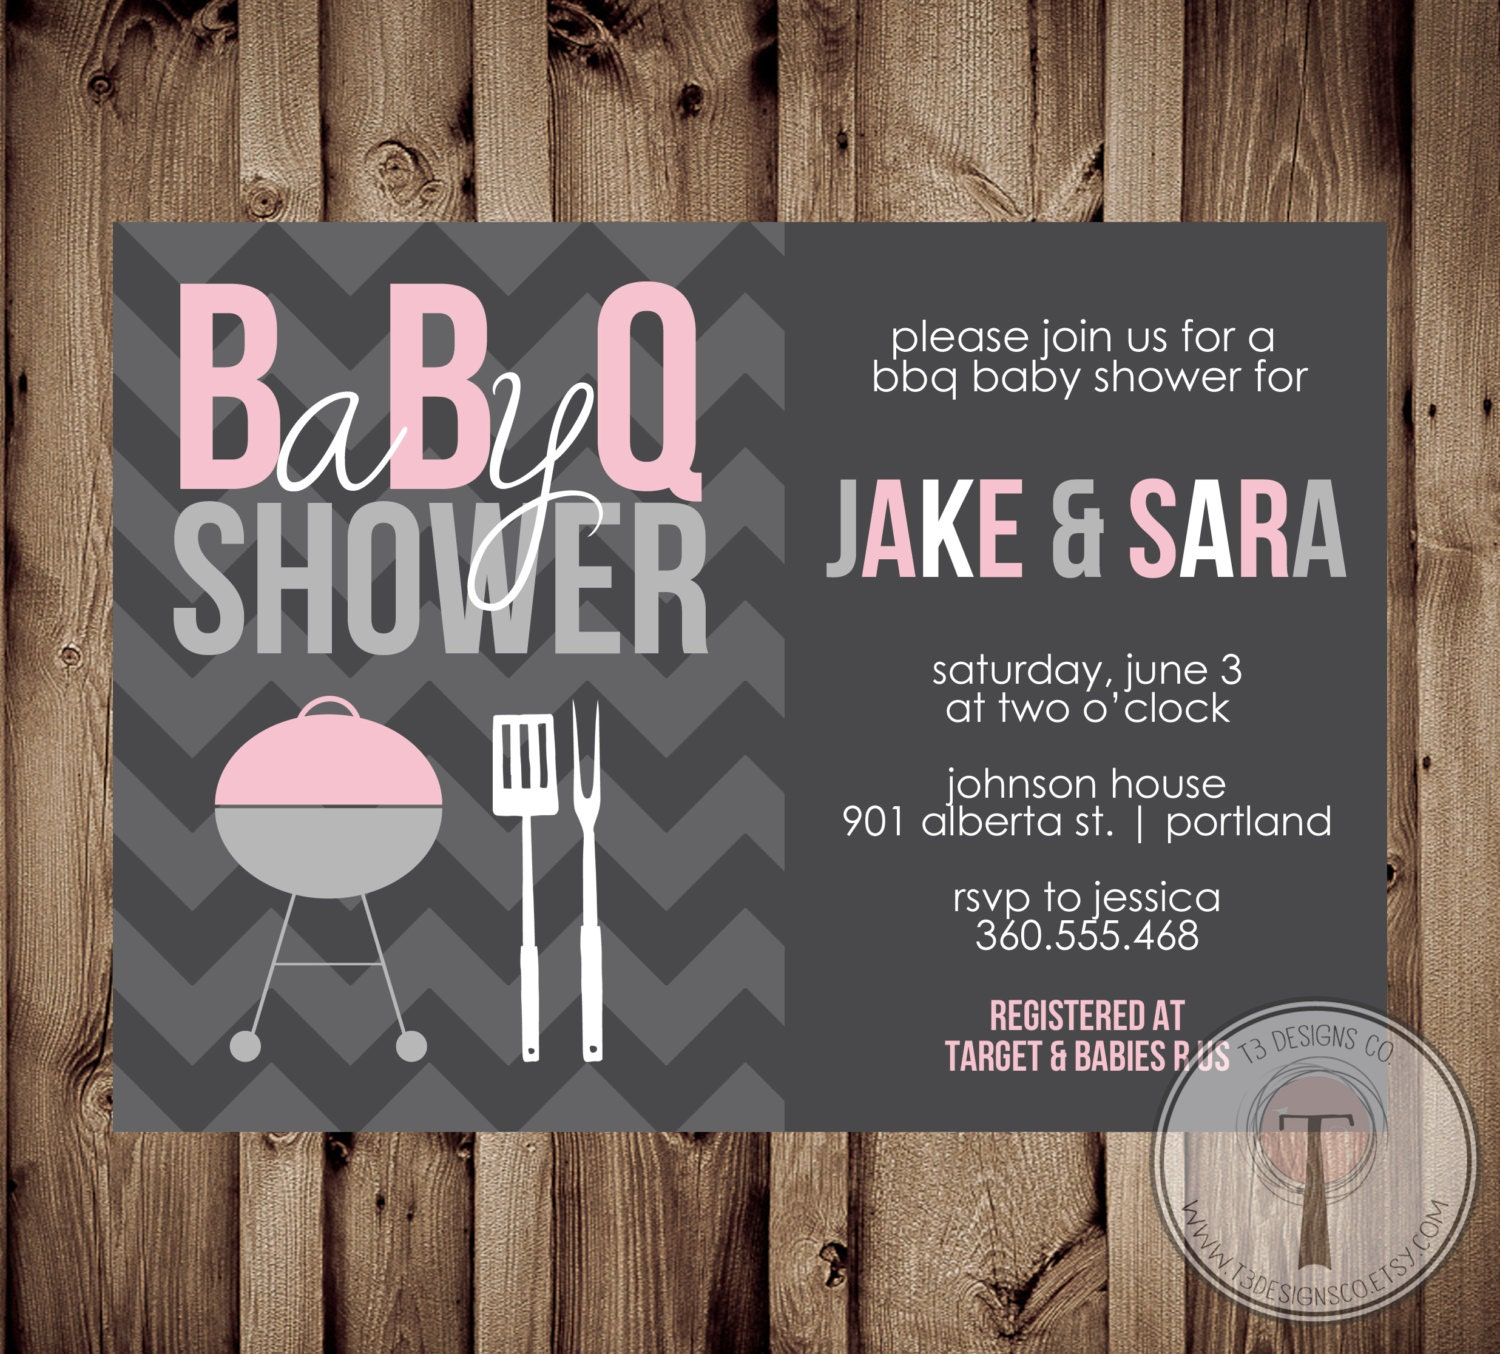 Baby Shower BBQ, BBQ Baby Shower Invitation, bbq shower, barbecue ...